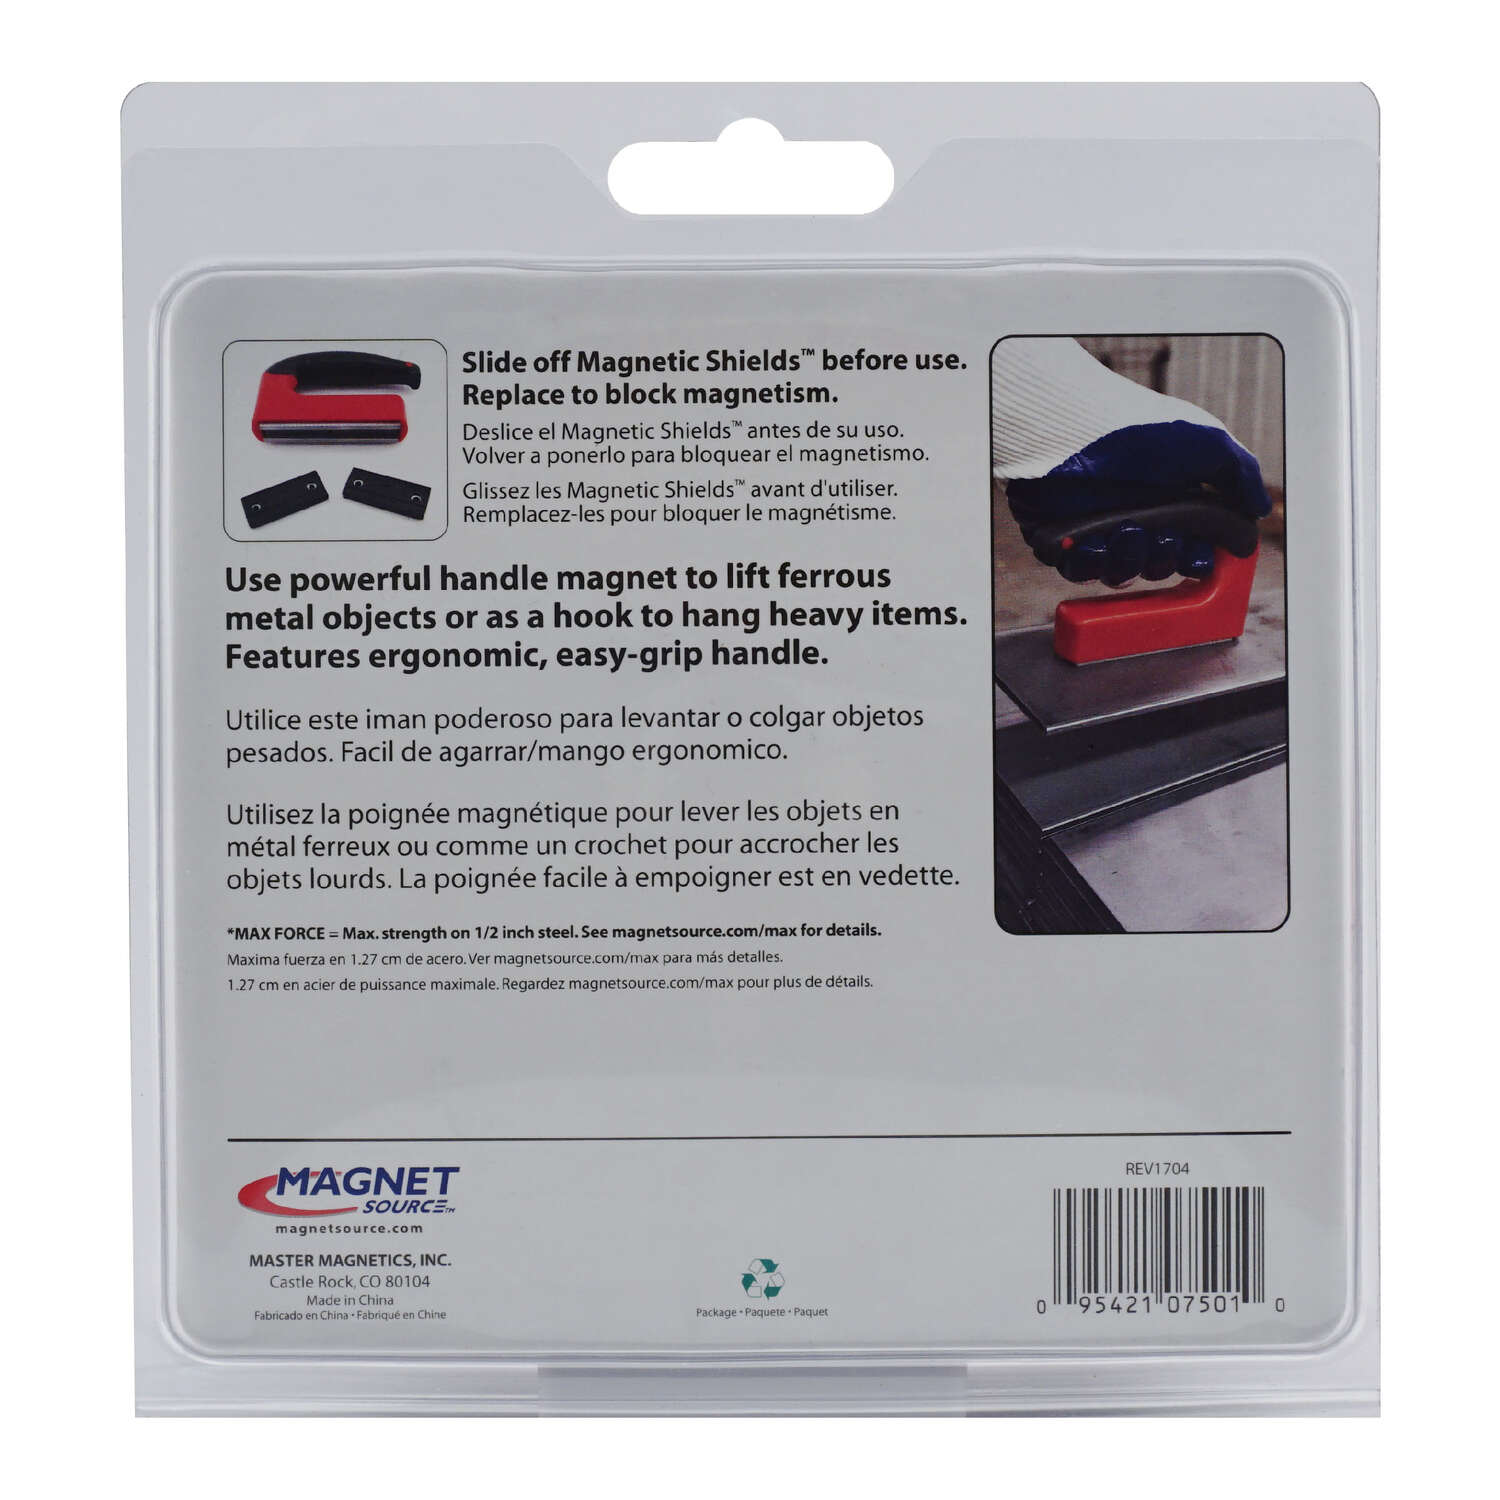 Master Magnetics  The Magnet Source  5.25 in. Ceramic  Handle Magnet  100 lb. 3.4 MGOe 1 pc. Red